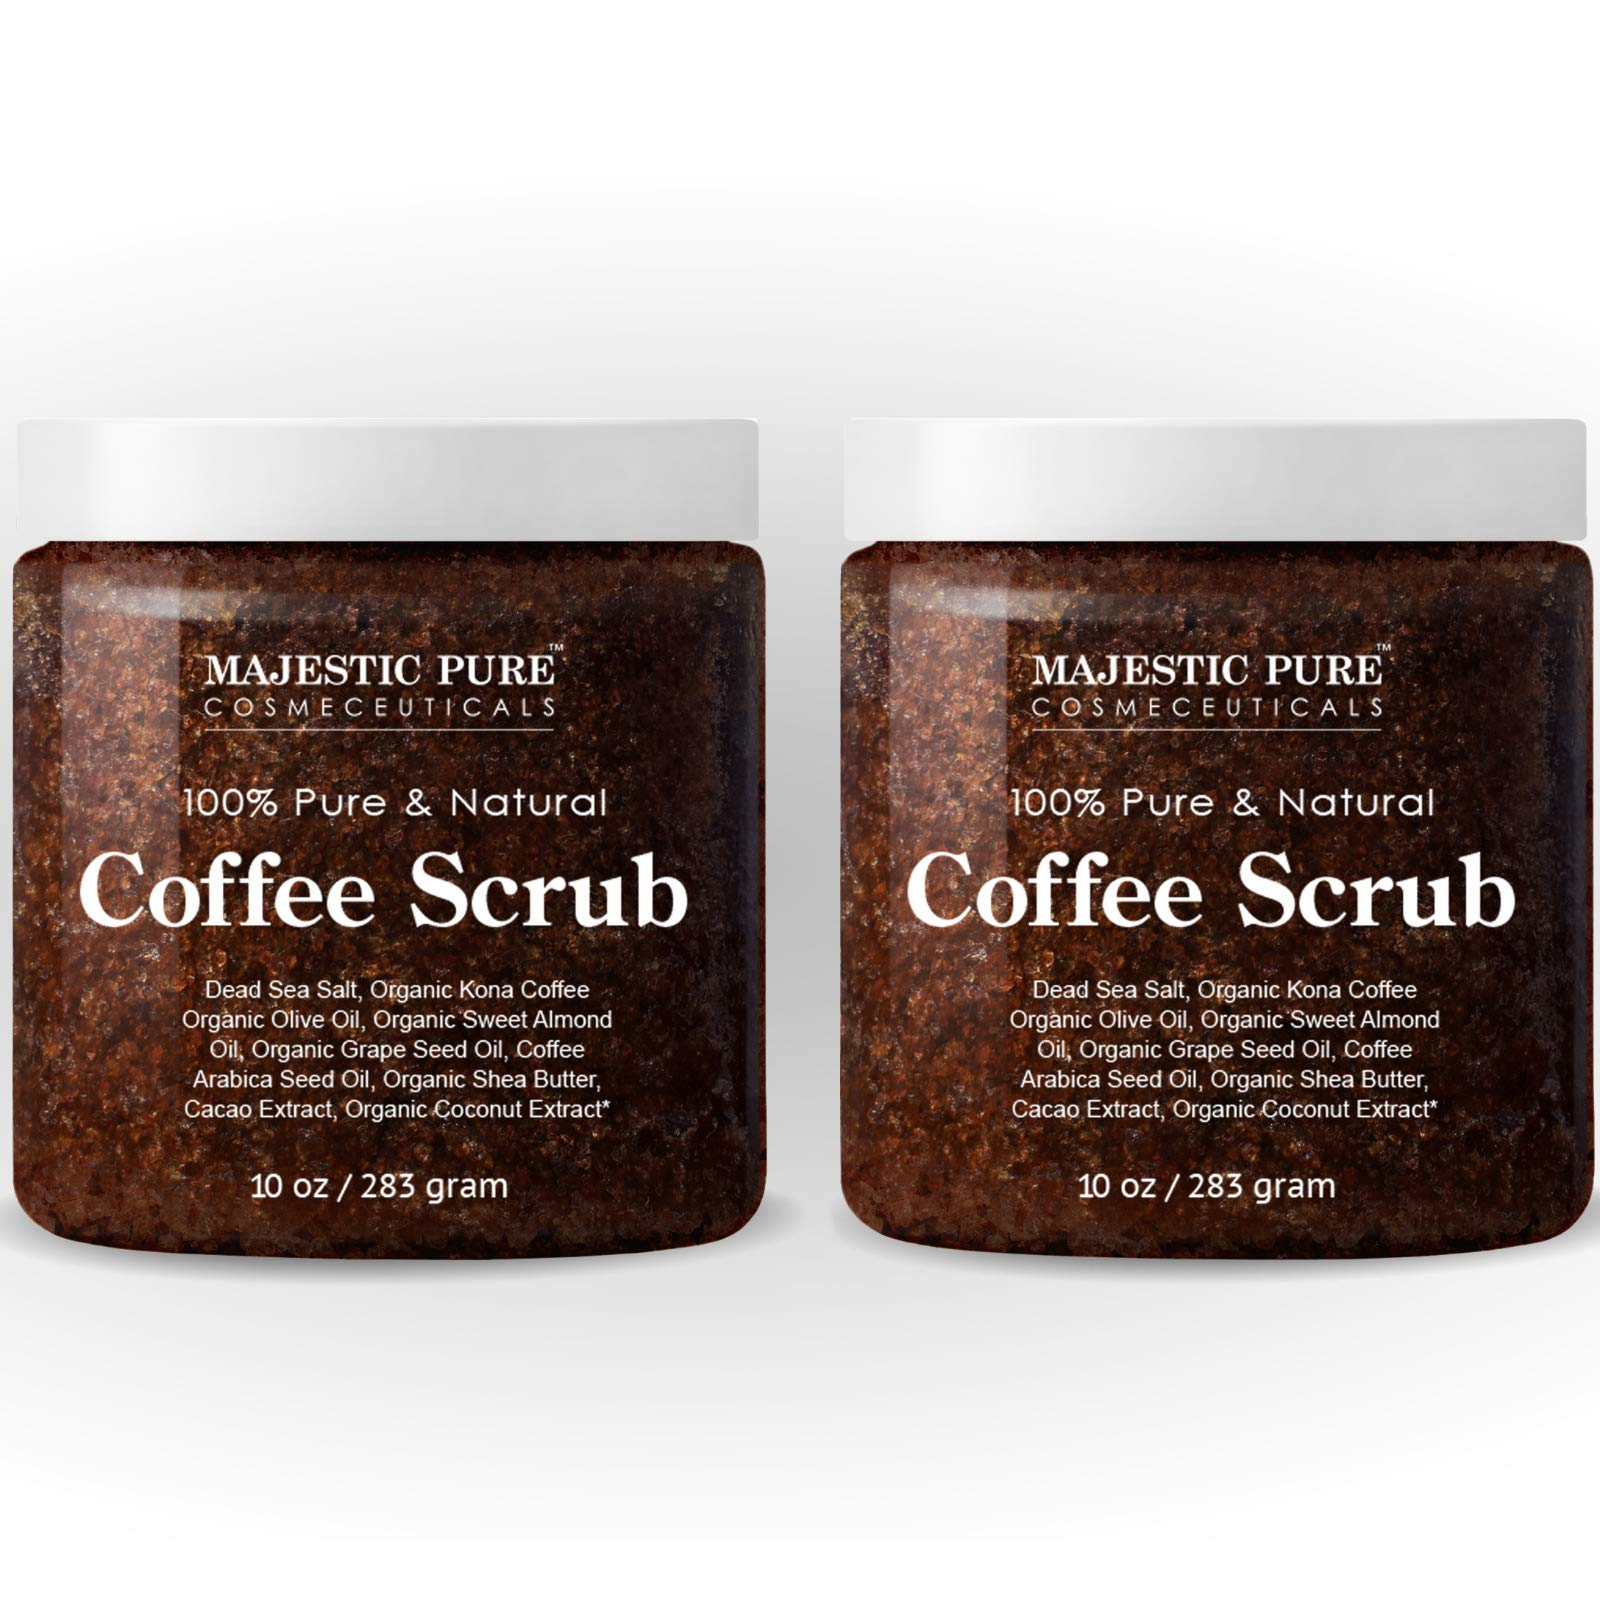 Majestic Pure Arabica Coffee Scrub - All Natural Body Scrub for Skin Care, Stretch Marks, Acne & Cellulite, Reduce the Look of Spider Veins, Eczema, Age Spots & Varicose Veins, Set Of 2